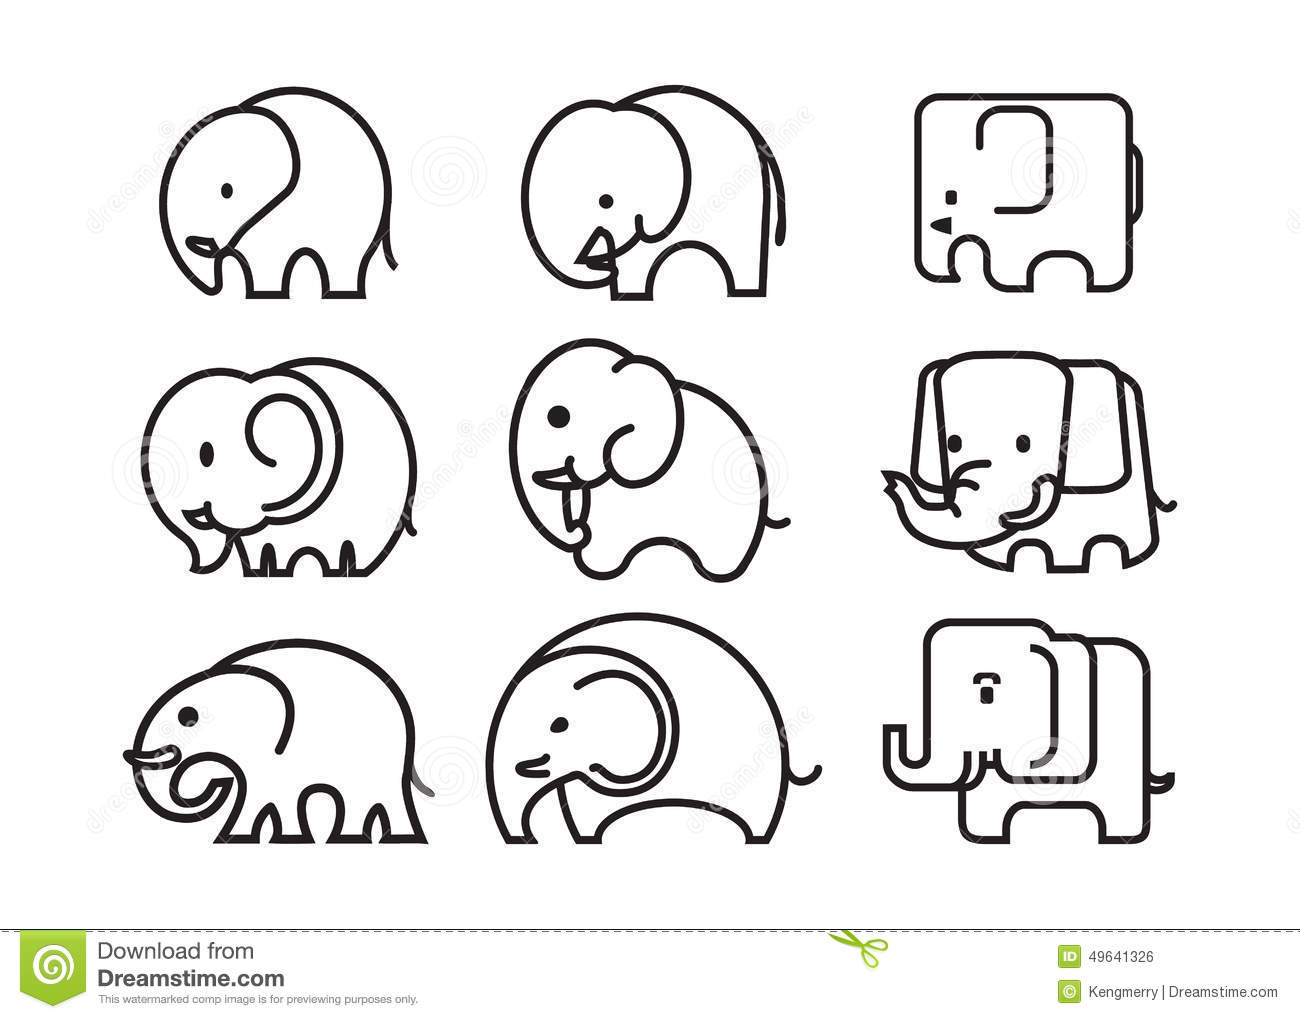 Elephant icon stock vector  Illustration of africa, symbol - 49641326